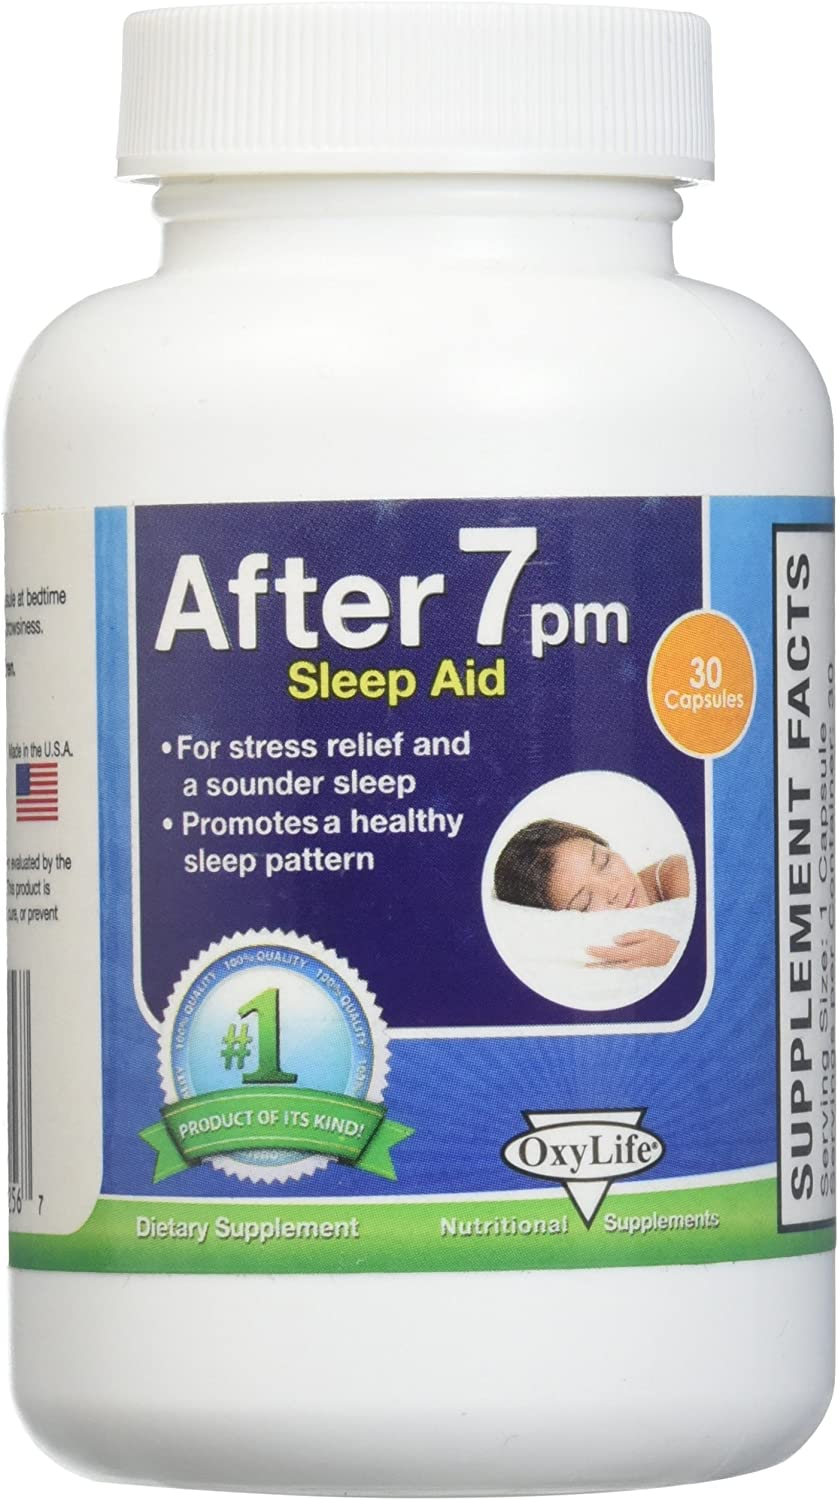 Amazon Com Oxy Life Inc After 7 Pm Sleep Aid 30 Vgc 0 02 Pound